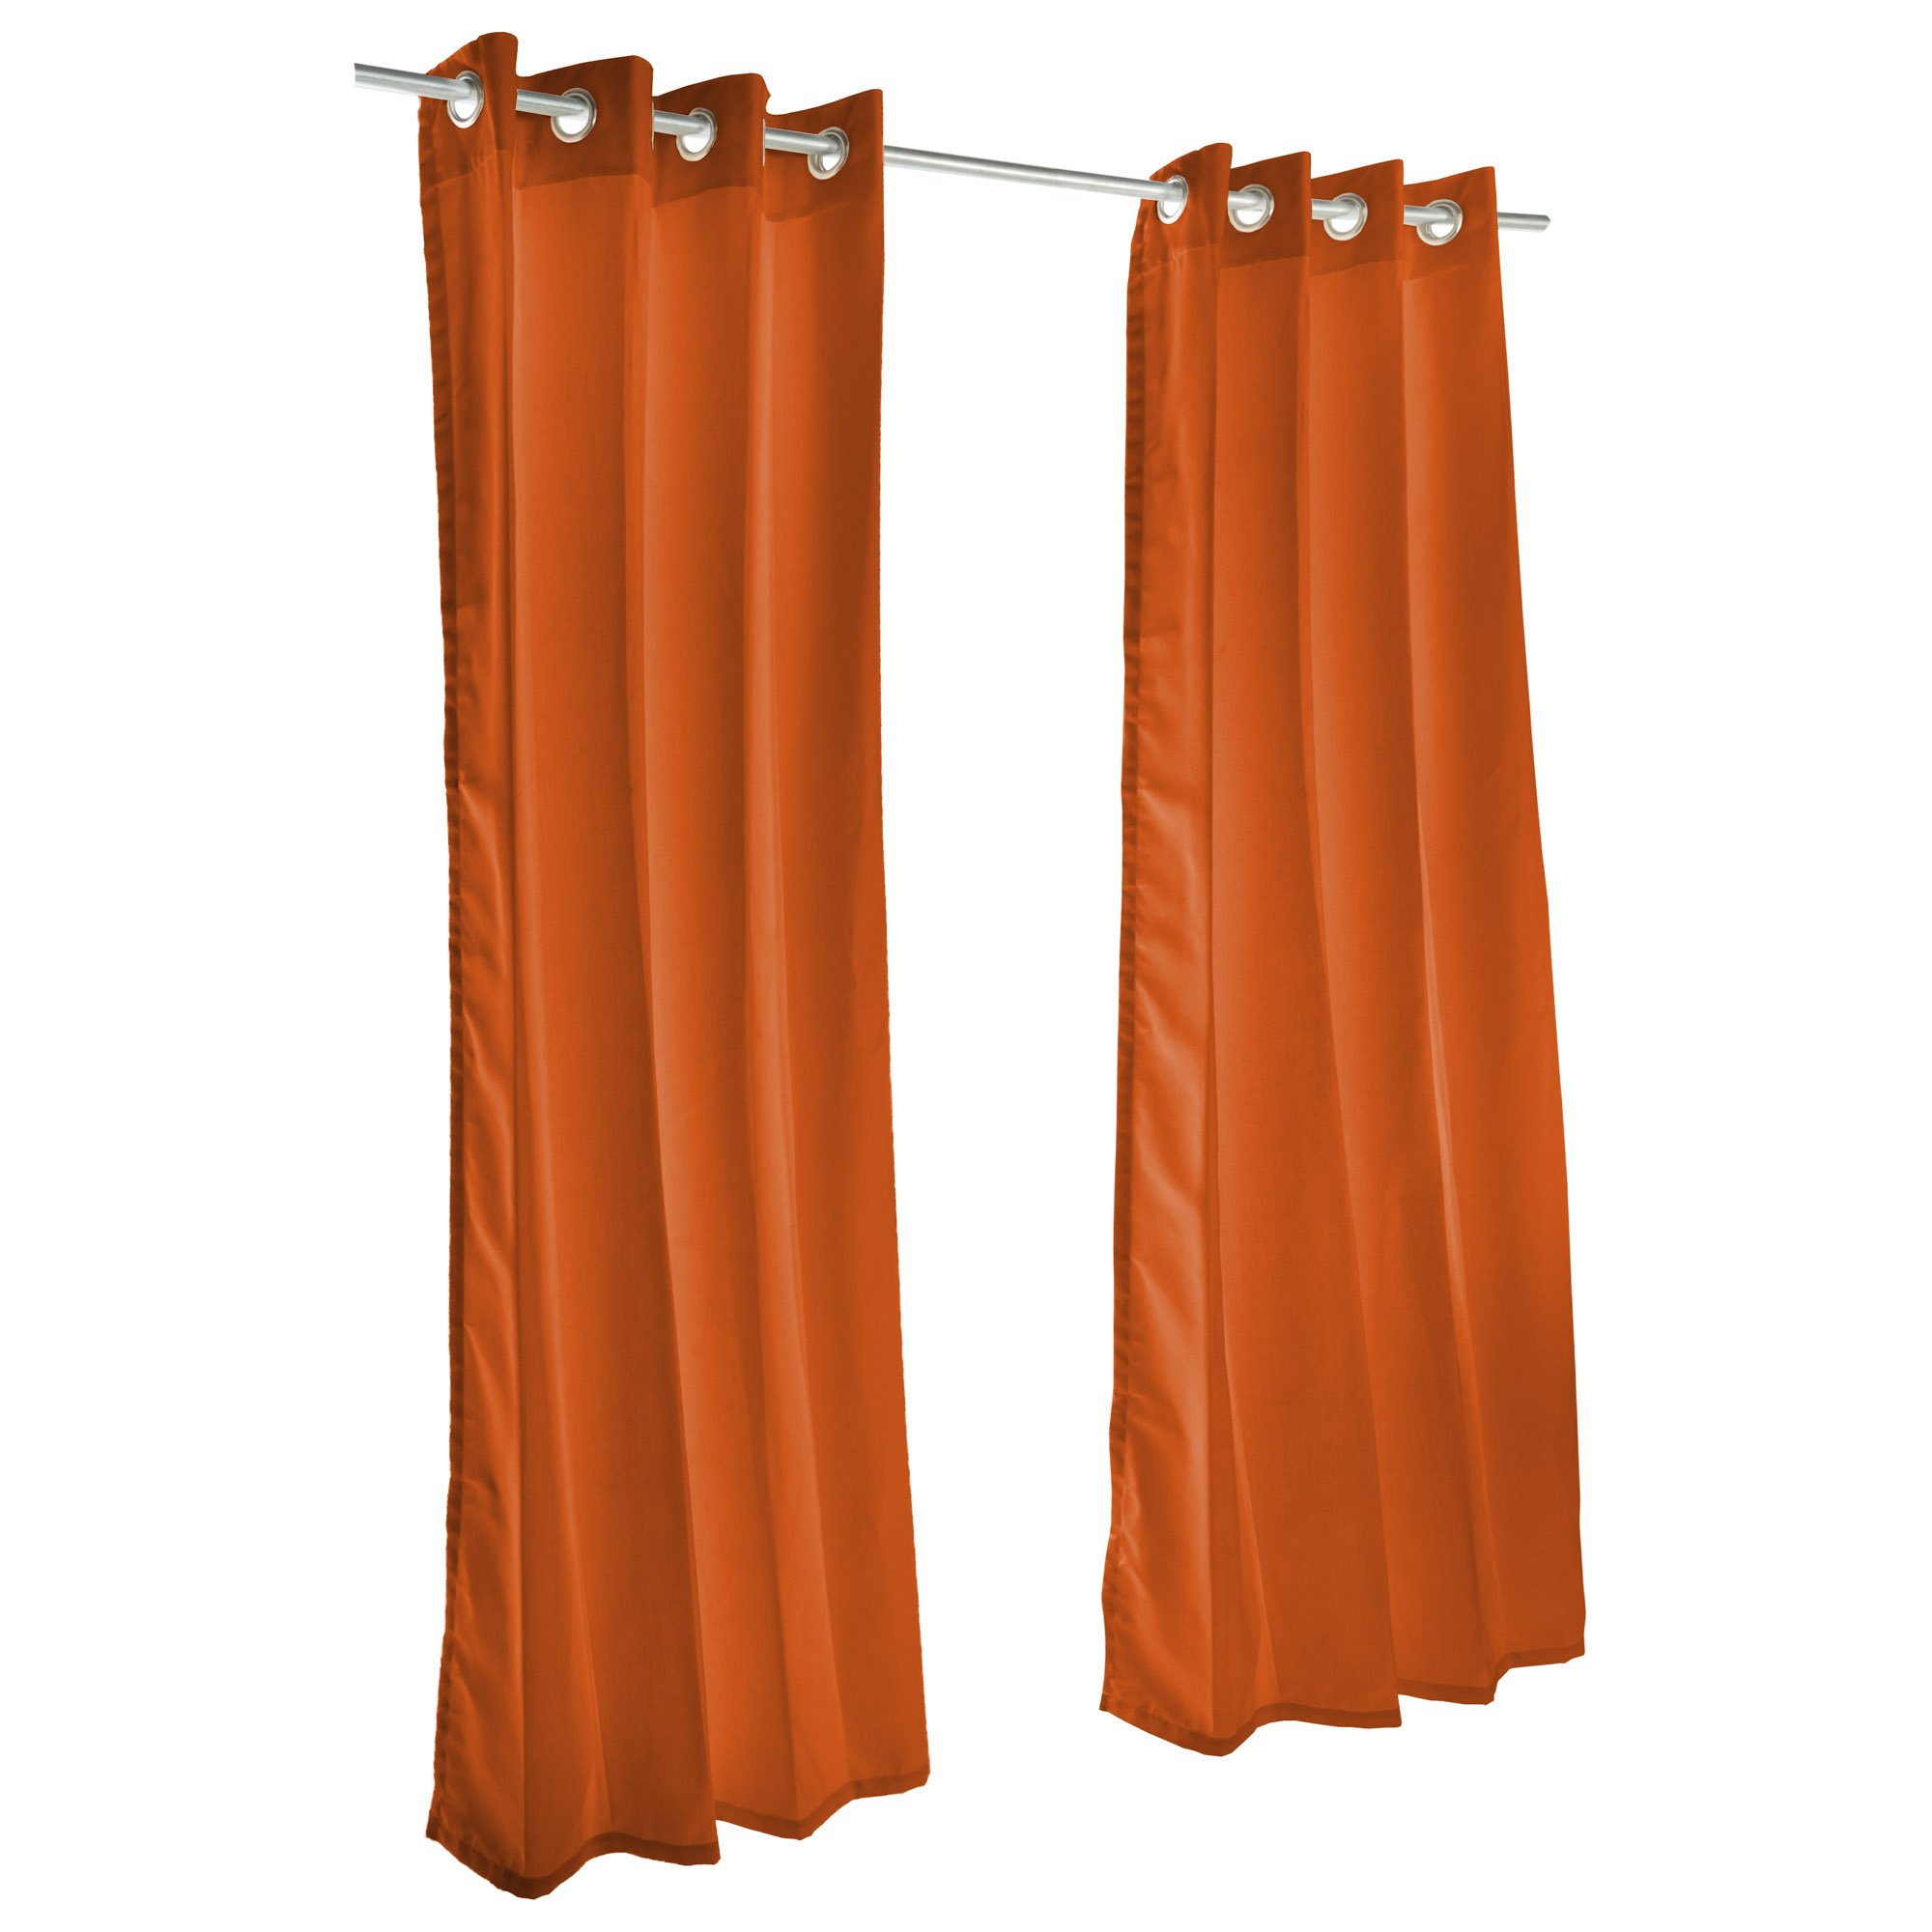 Sunbrella Outdoor Curtain with Grommets -Nickle Grommets - Rust by Sunbrella